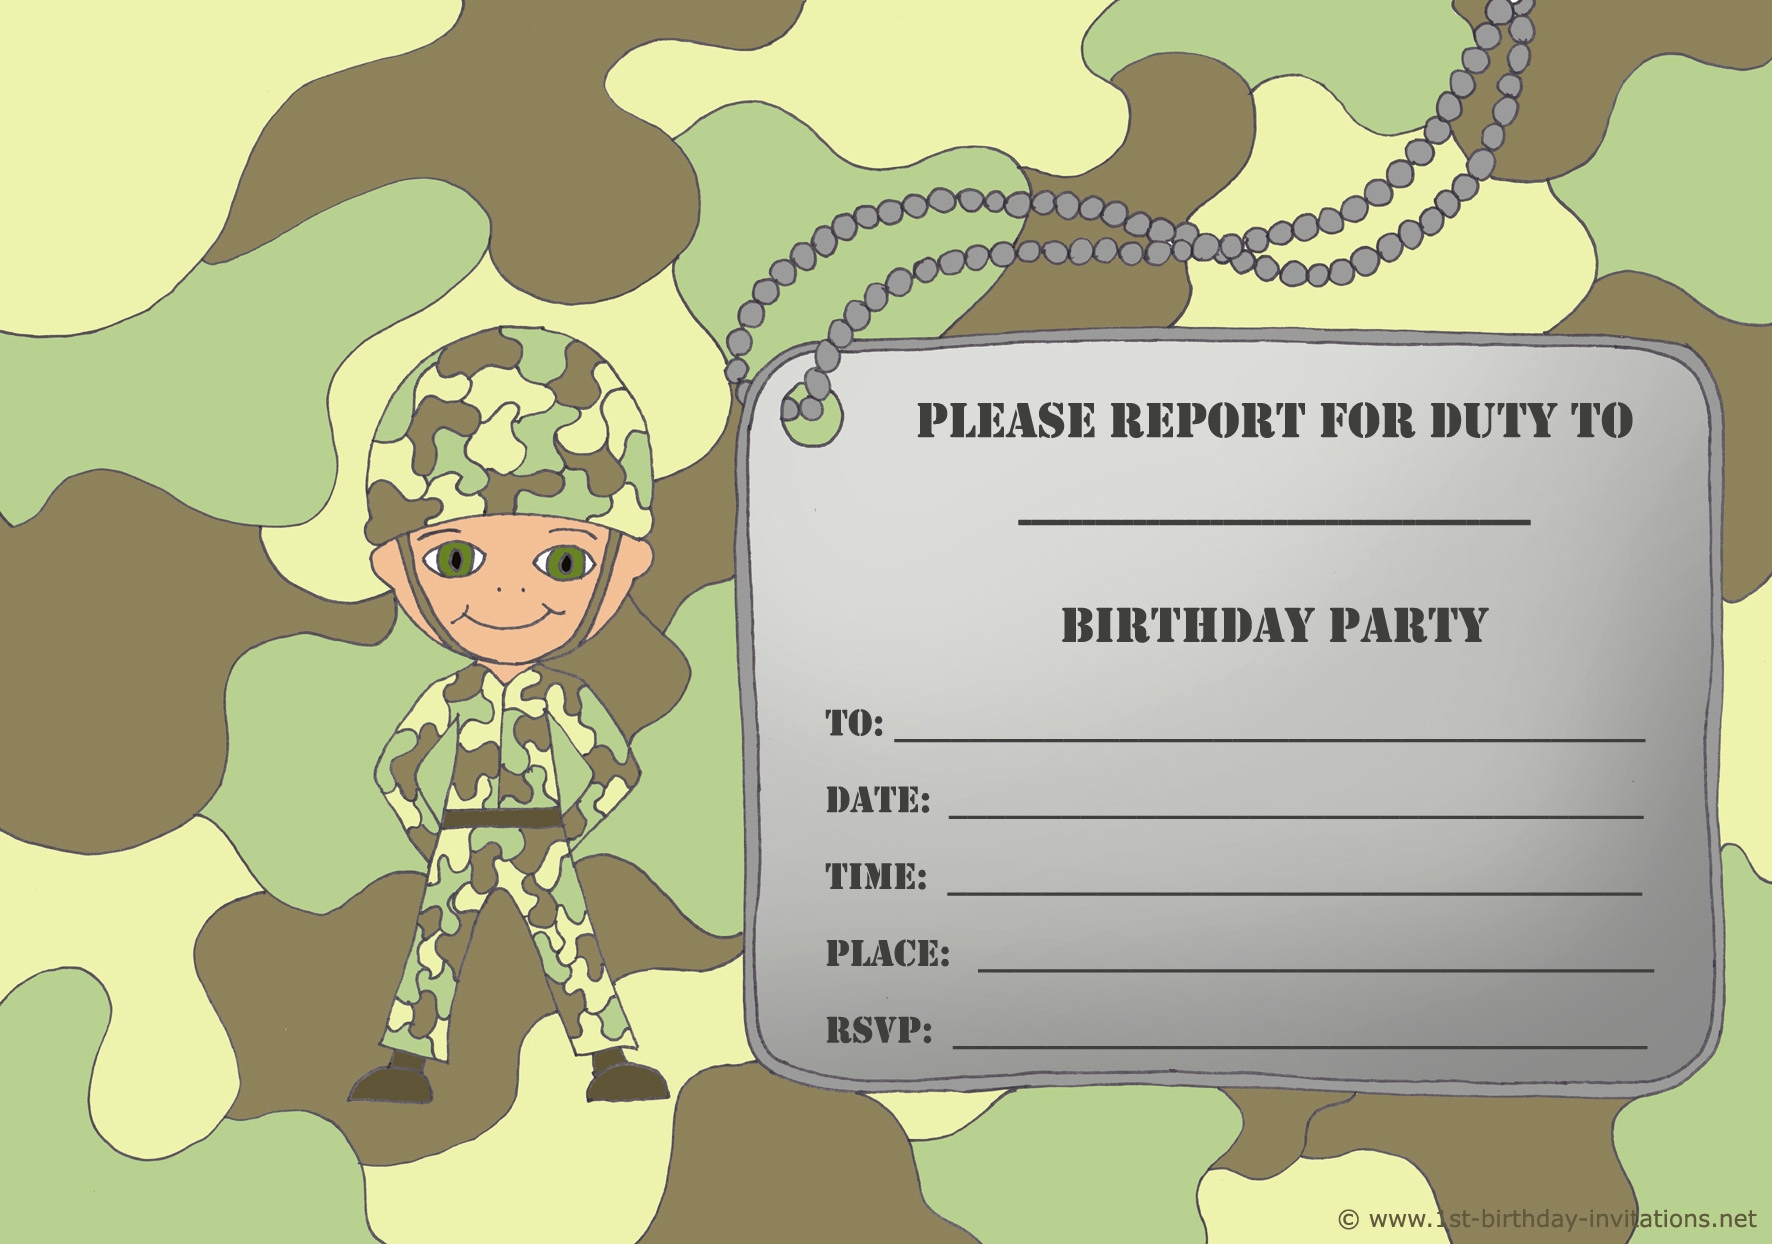 camo birthday card template ; tiny-prints-birthday-cards-unique-camo-birthday-invitations-templates-ideas-all-invitations-ideas-of-tiny-prints-birthday-cards